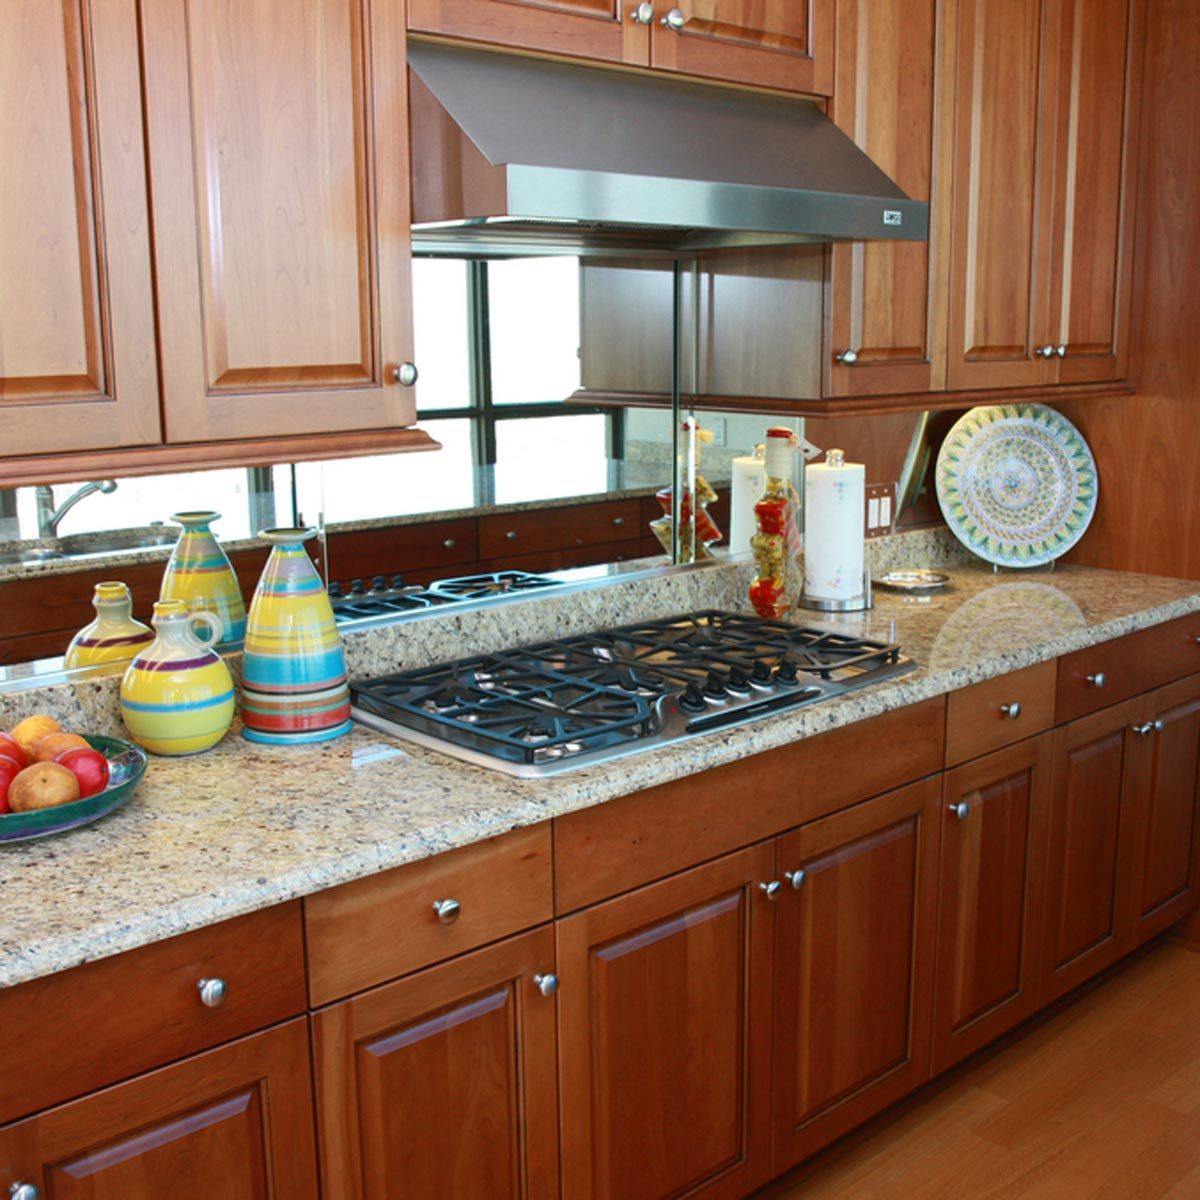 Kitchen with wooden cabinets and a mirror backsplash